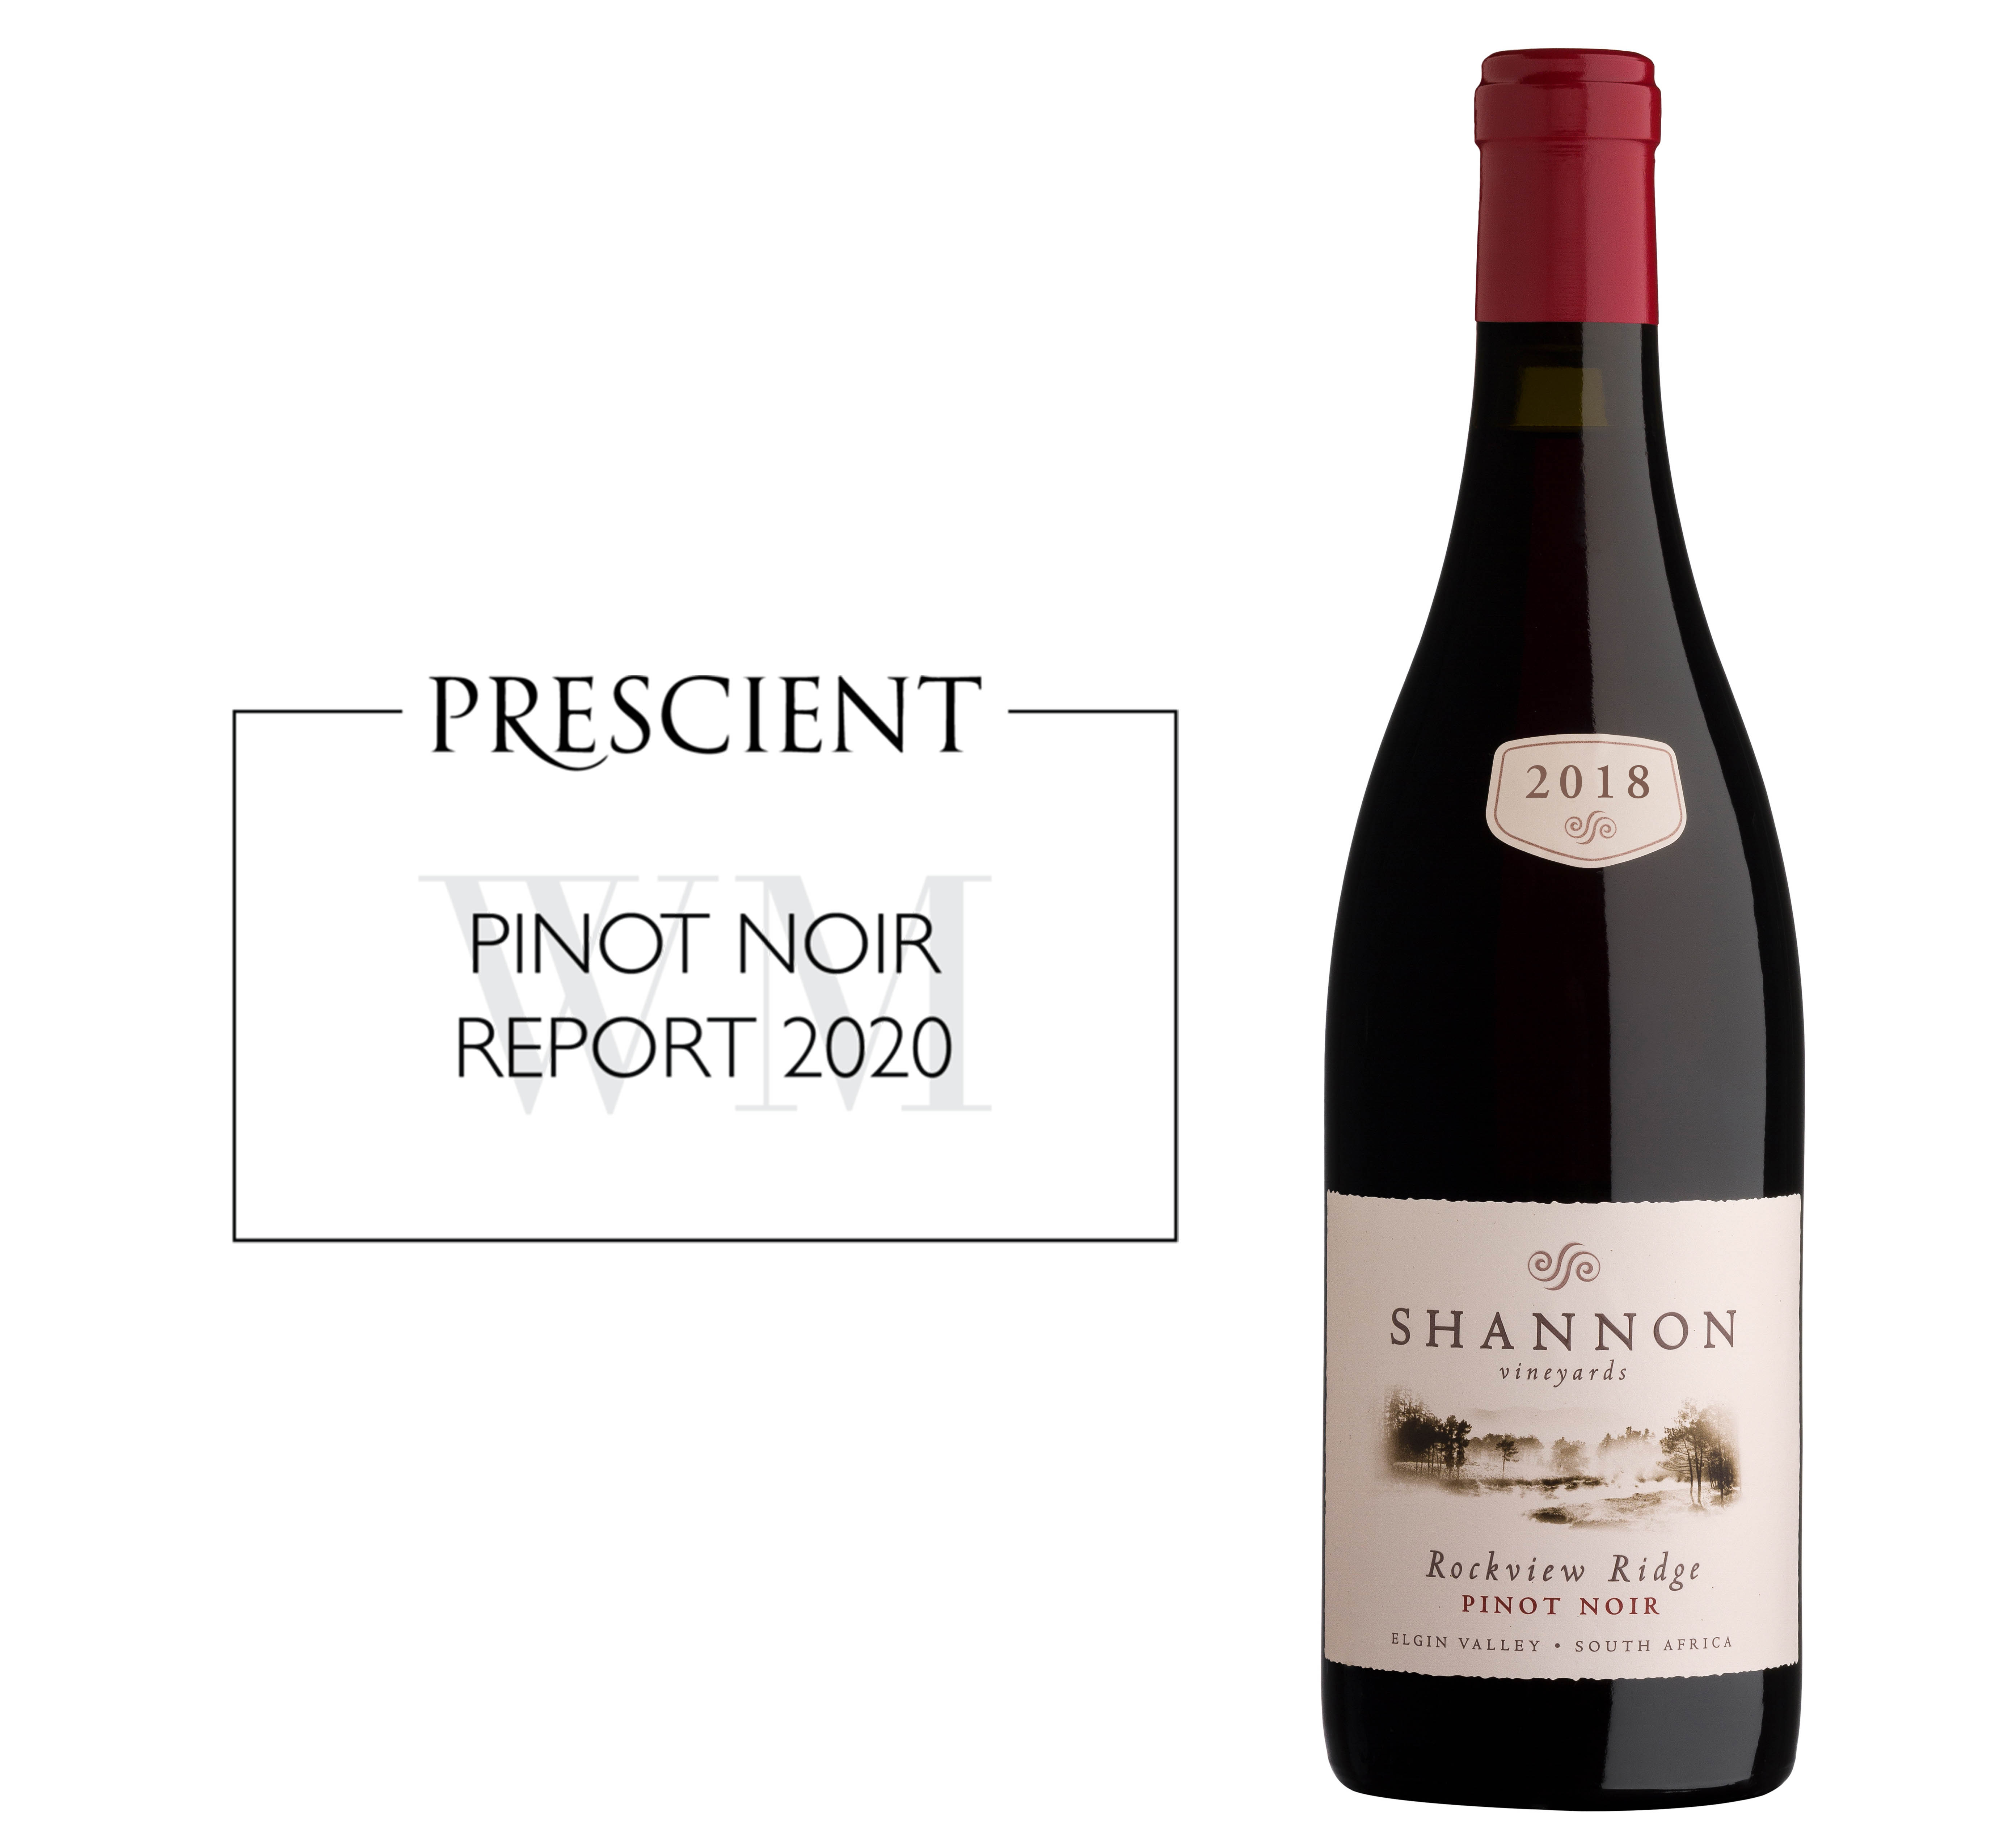 Shannon Rockview Ridge 2018 a winner in the Prescient Pinot Noir Report 2020 image main